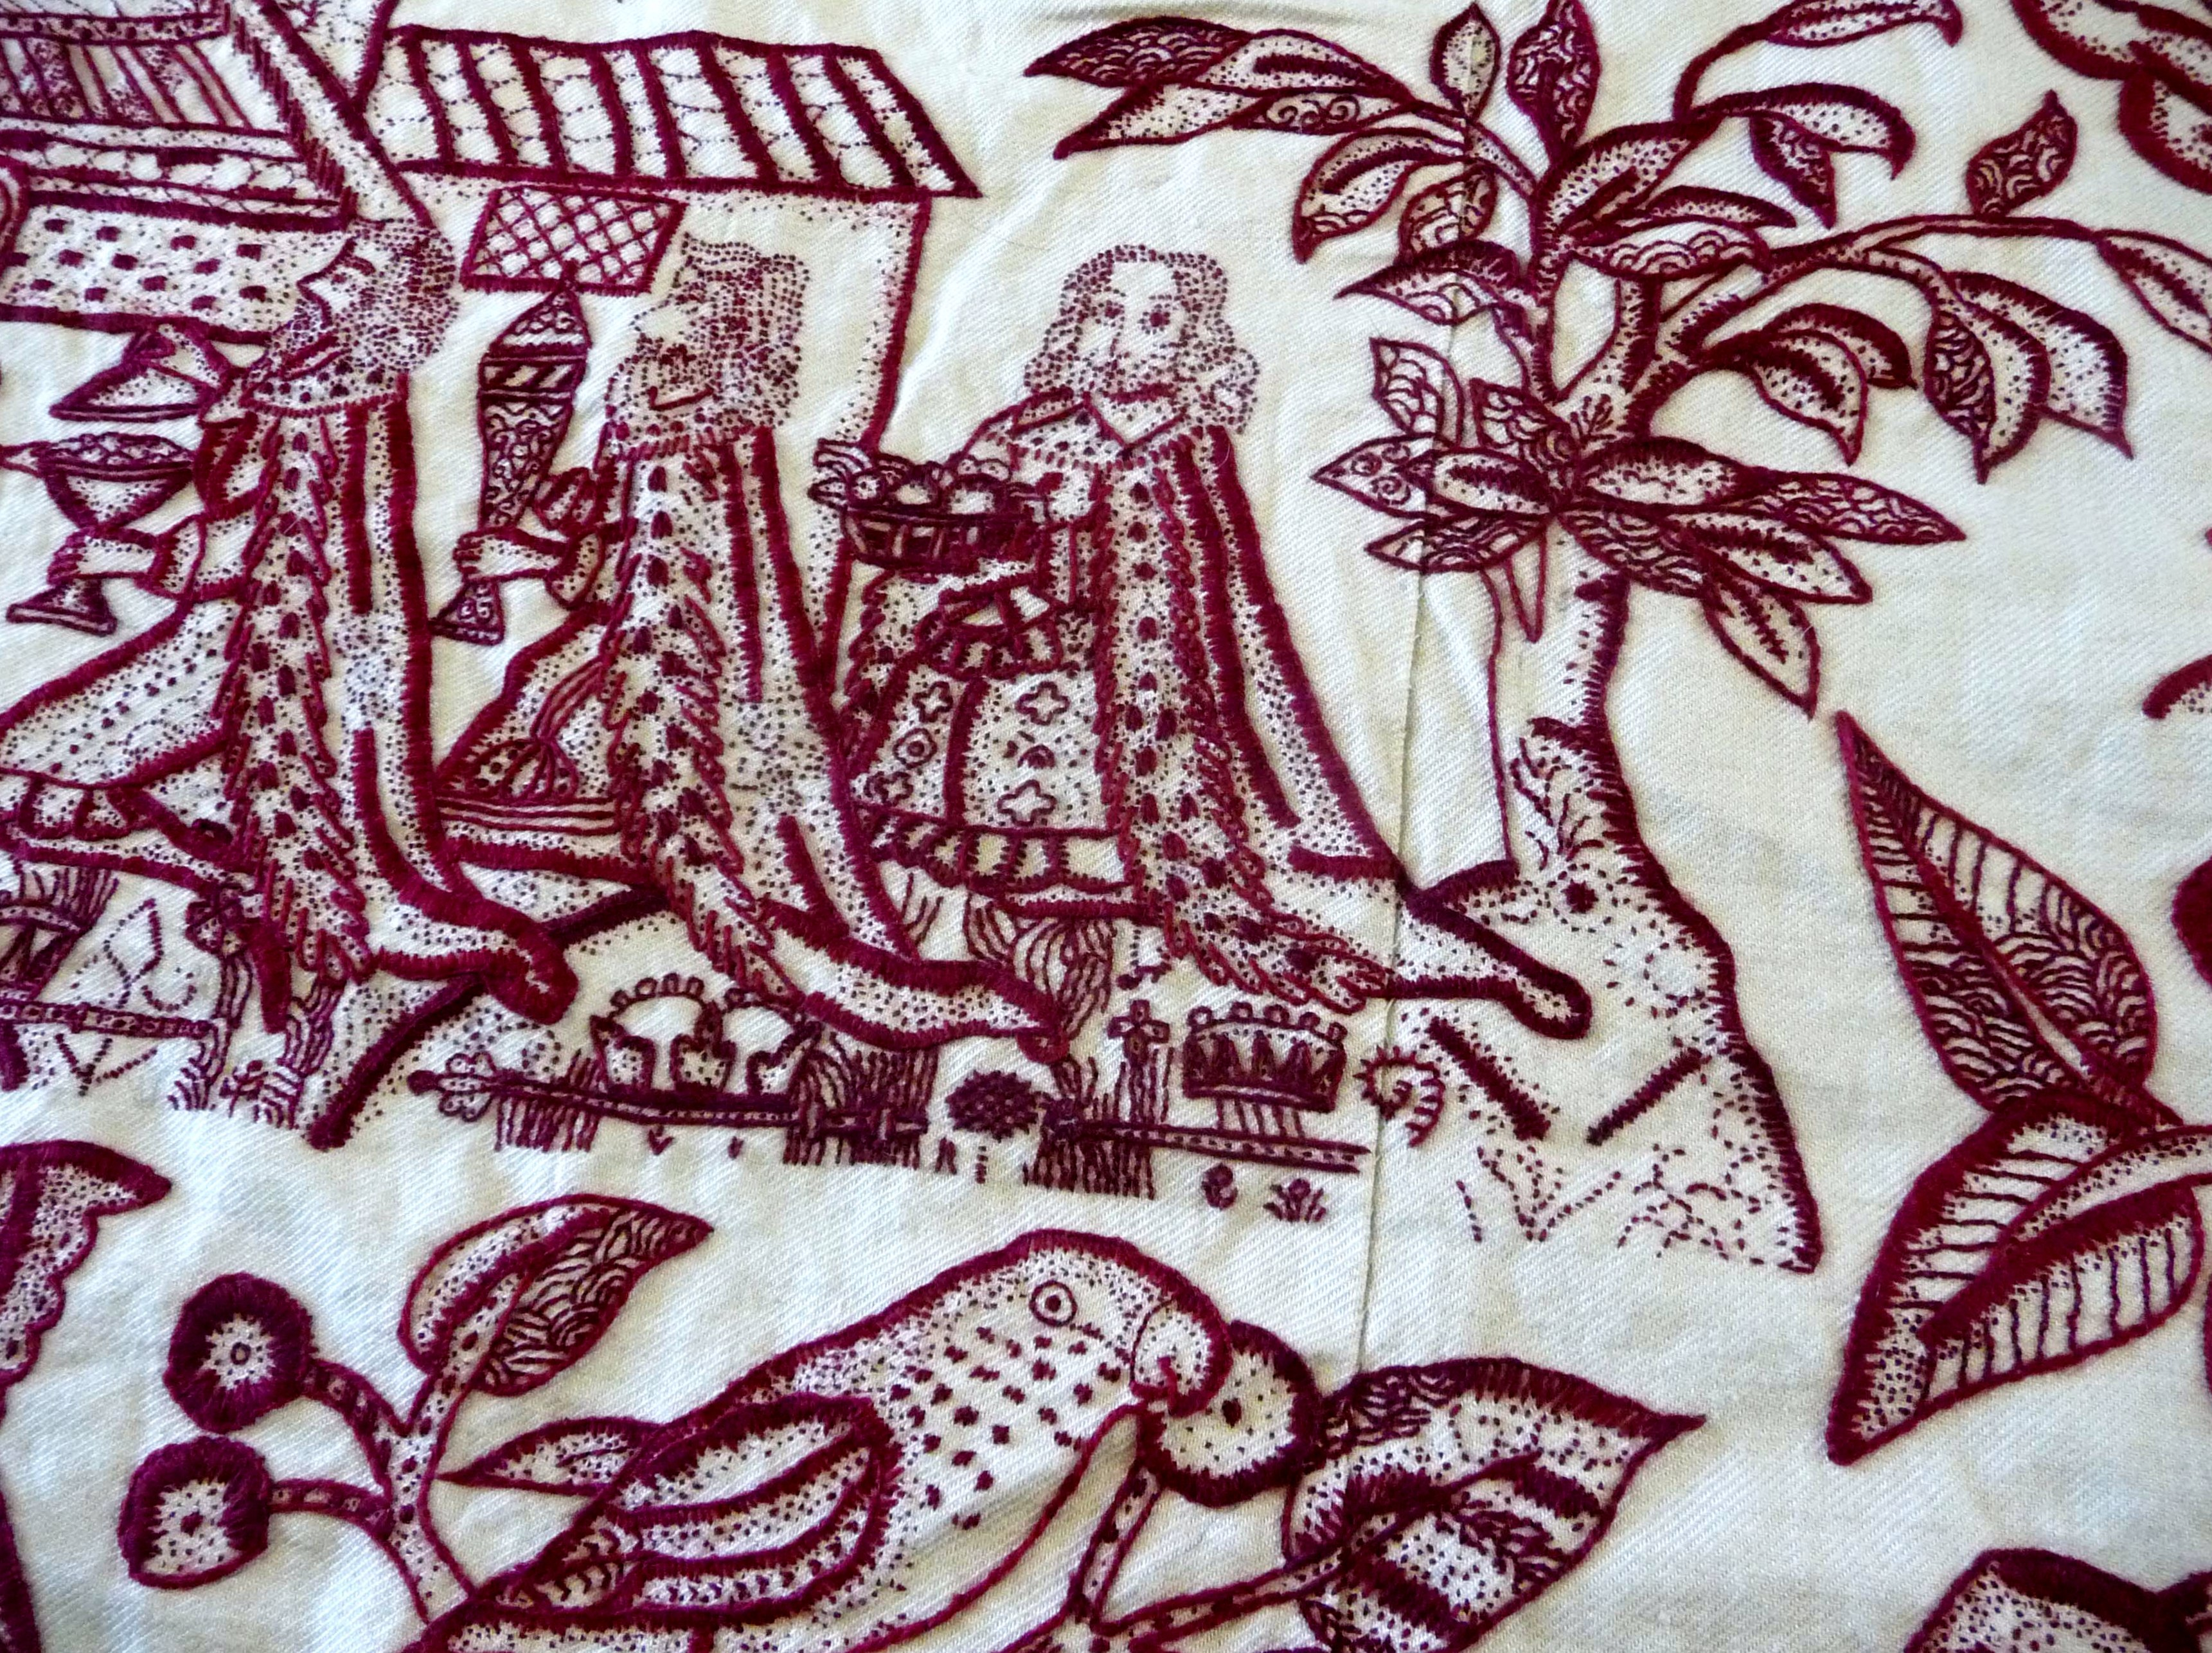 detail of embroidered reproduction of a redwork altar cloth by Phillipa Turnbull